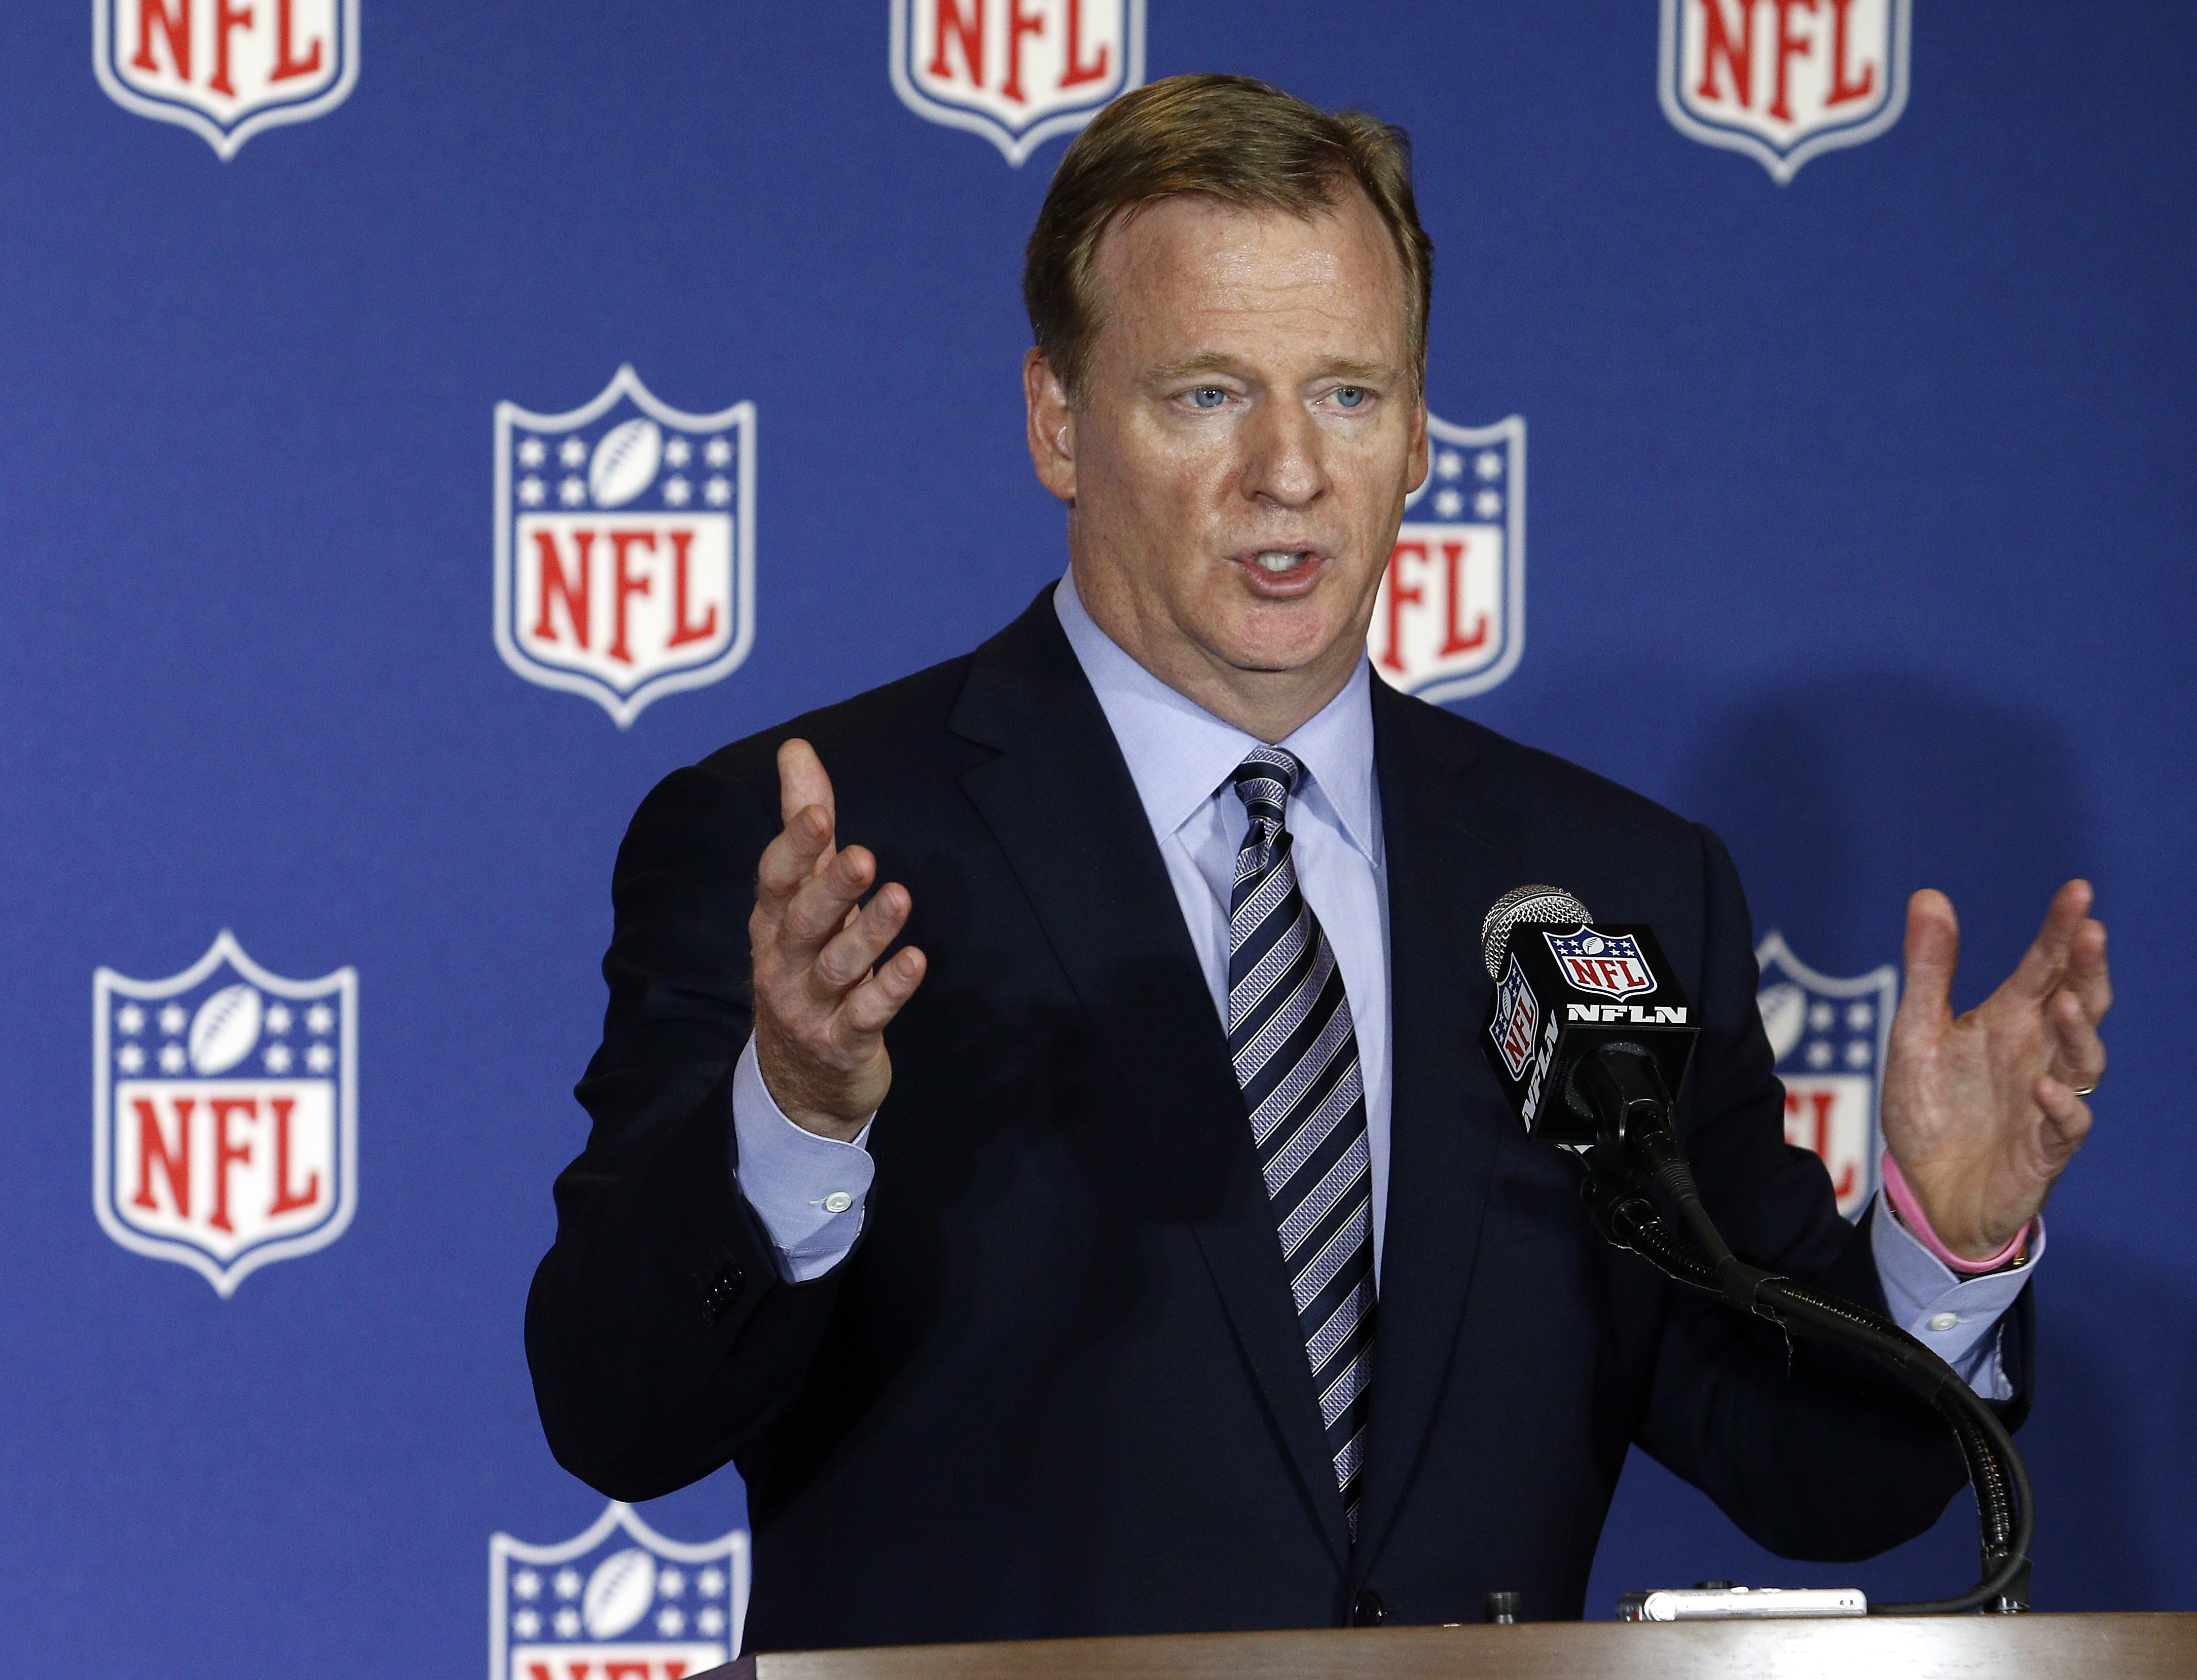 FILE - In this May 24, 2016, file photo, NFL commissioner Roger Goodell answers reporter's questions at an NFL owner's meeting in Charlotte N.C.  Goodell disagrees with Colin Kaepernick's choice to kneel during the national anthem, but recognizes the quar